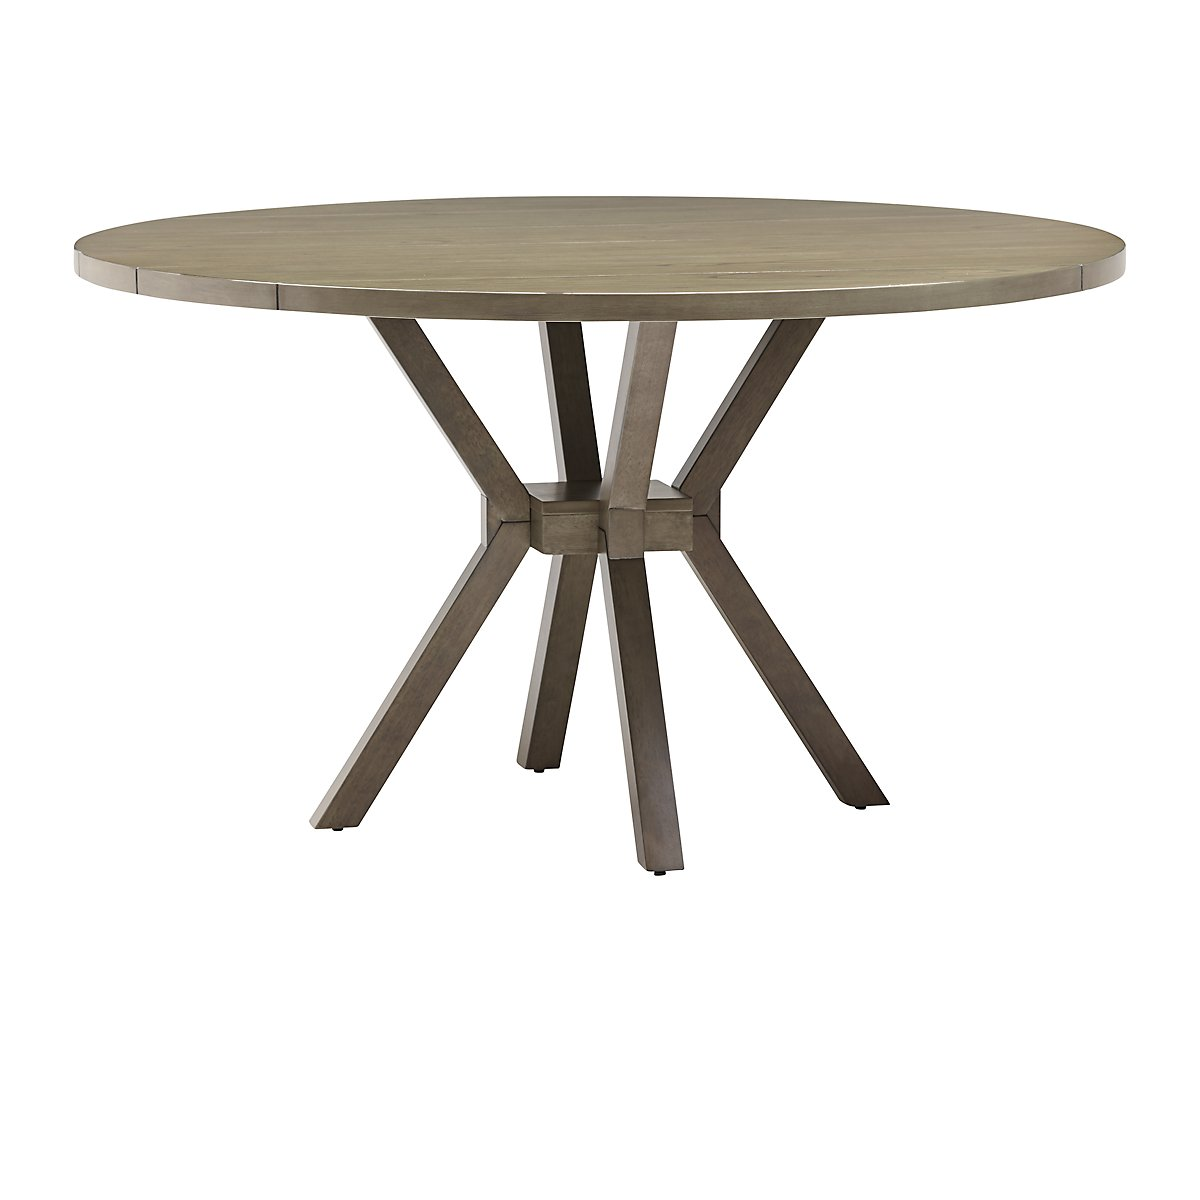 sienna gray round table acacia wood accent trestle bench legs crystal lamp nautical chair dining room sofa pier one imports pillows bunnings umbrella end tables outdoor side